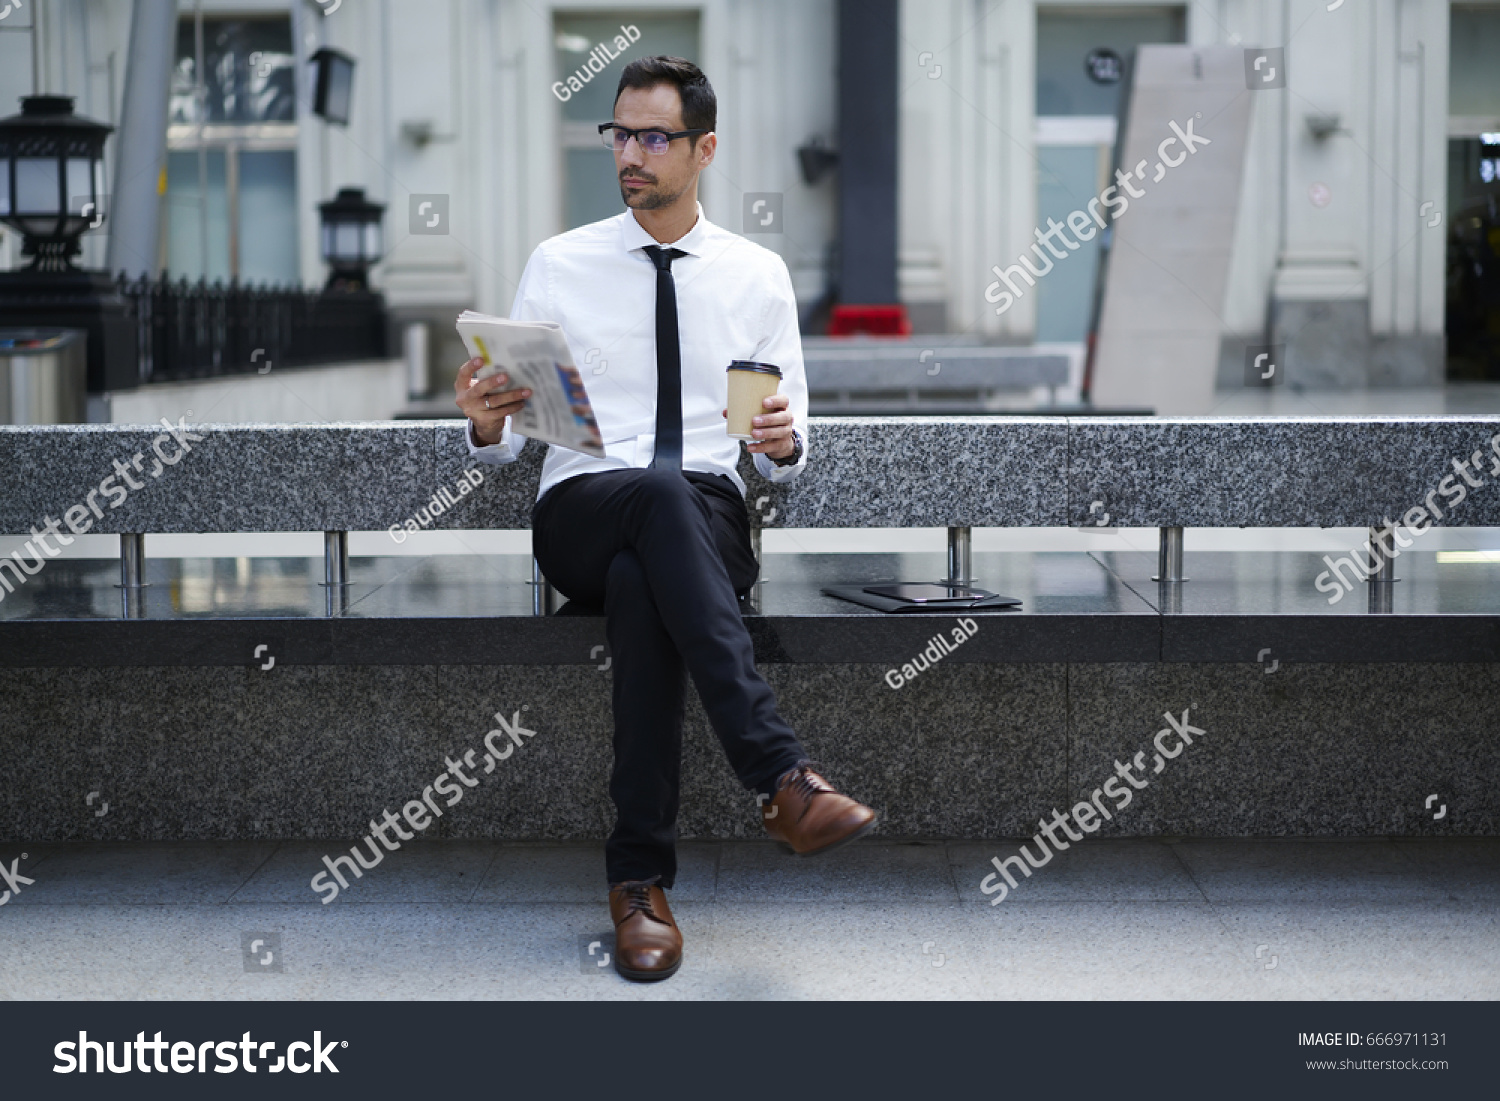 bbd3c06dd04 Handsome male banker in formal outfit reading newspaper holding coffee to  go waiting for transport getting